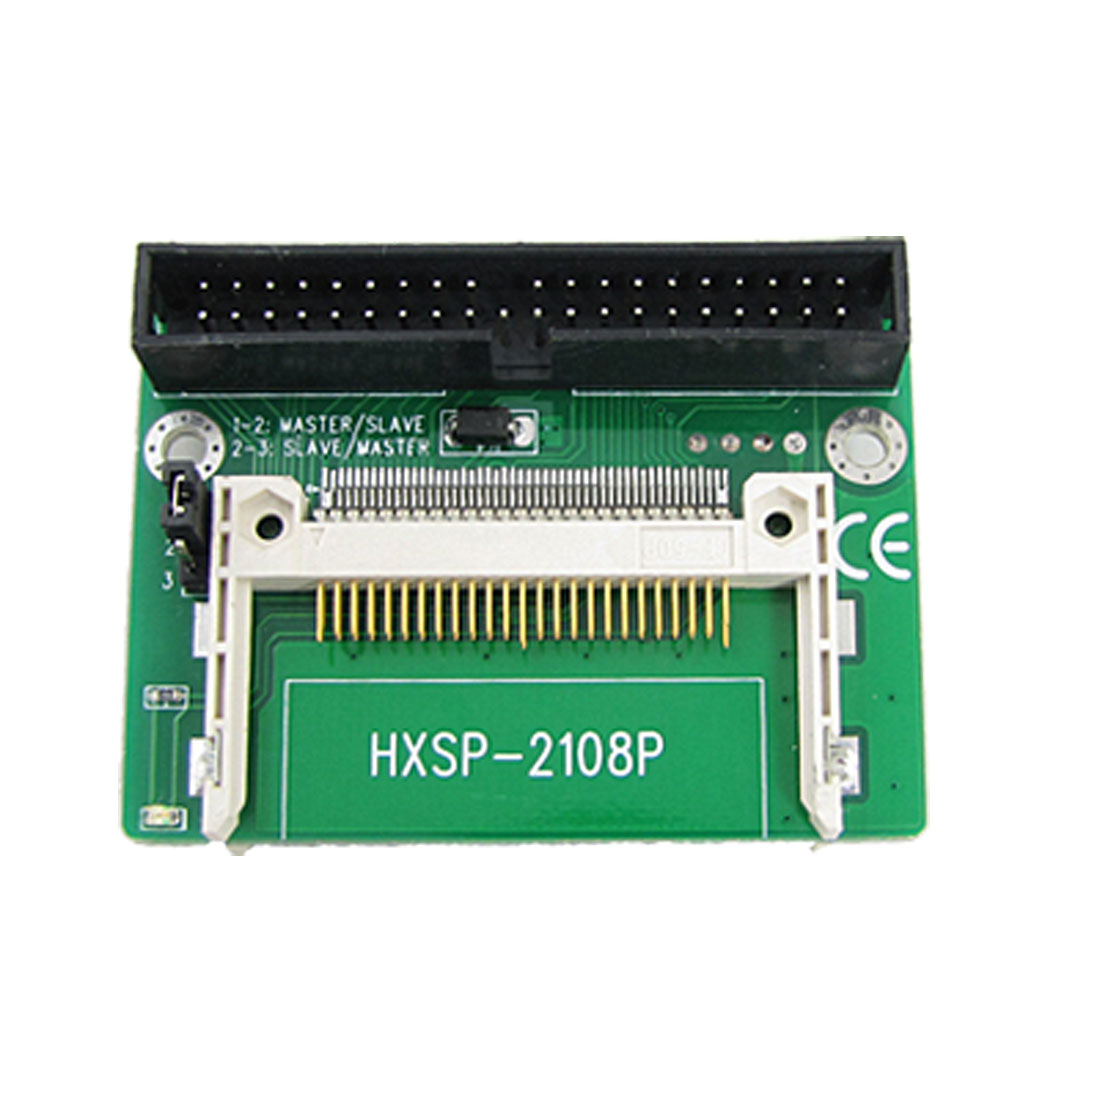 "Dual CF / Micro-Hard Disk Slot To PC 3.5"" IDE Adapter"